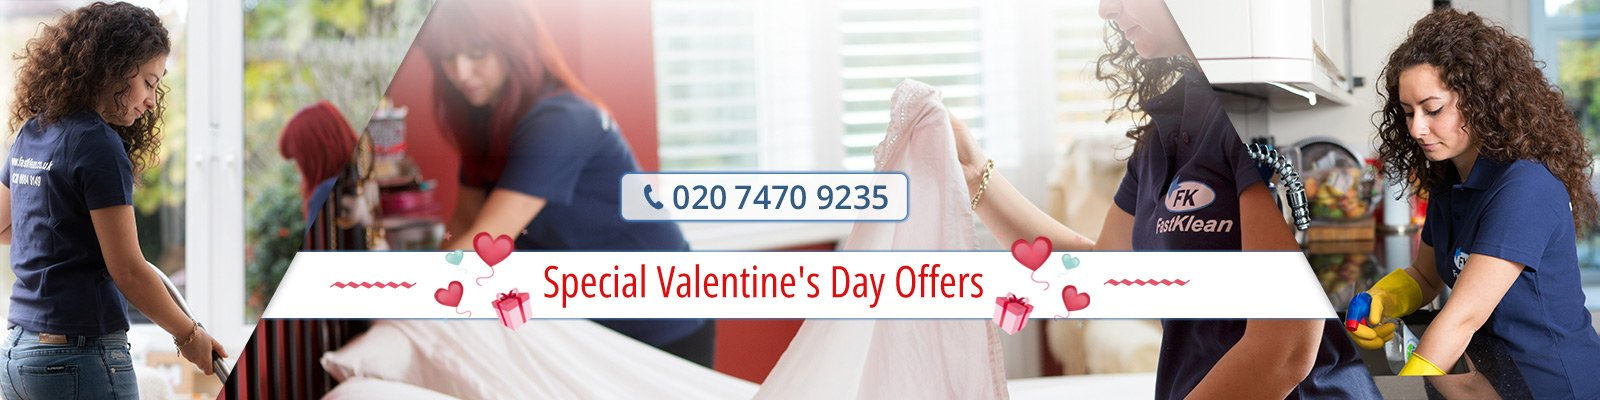 special-valenties-offers-slide